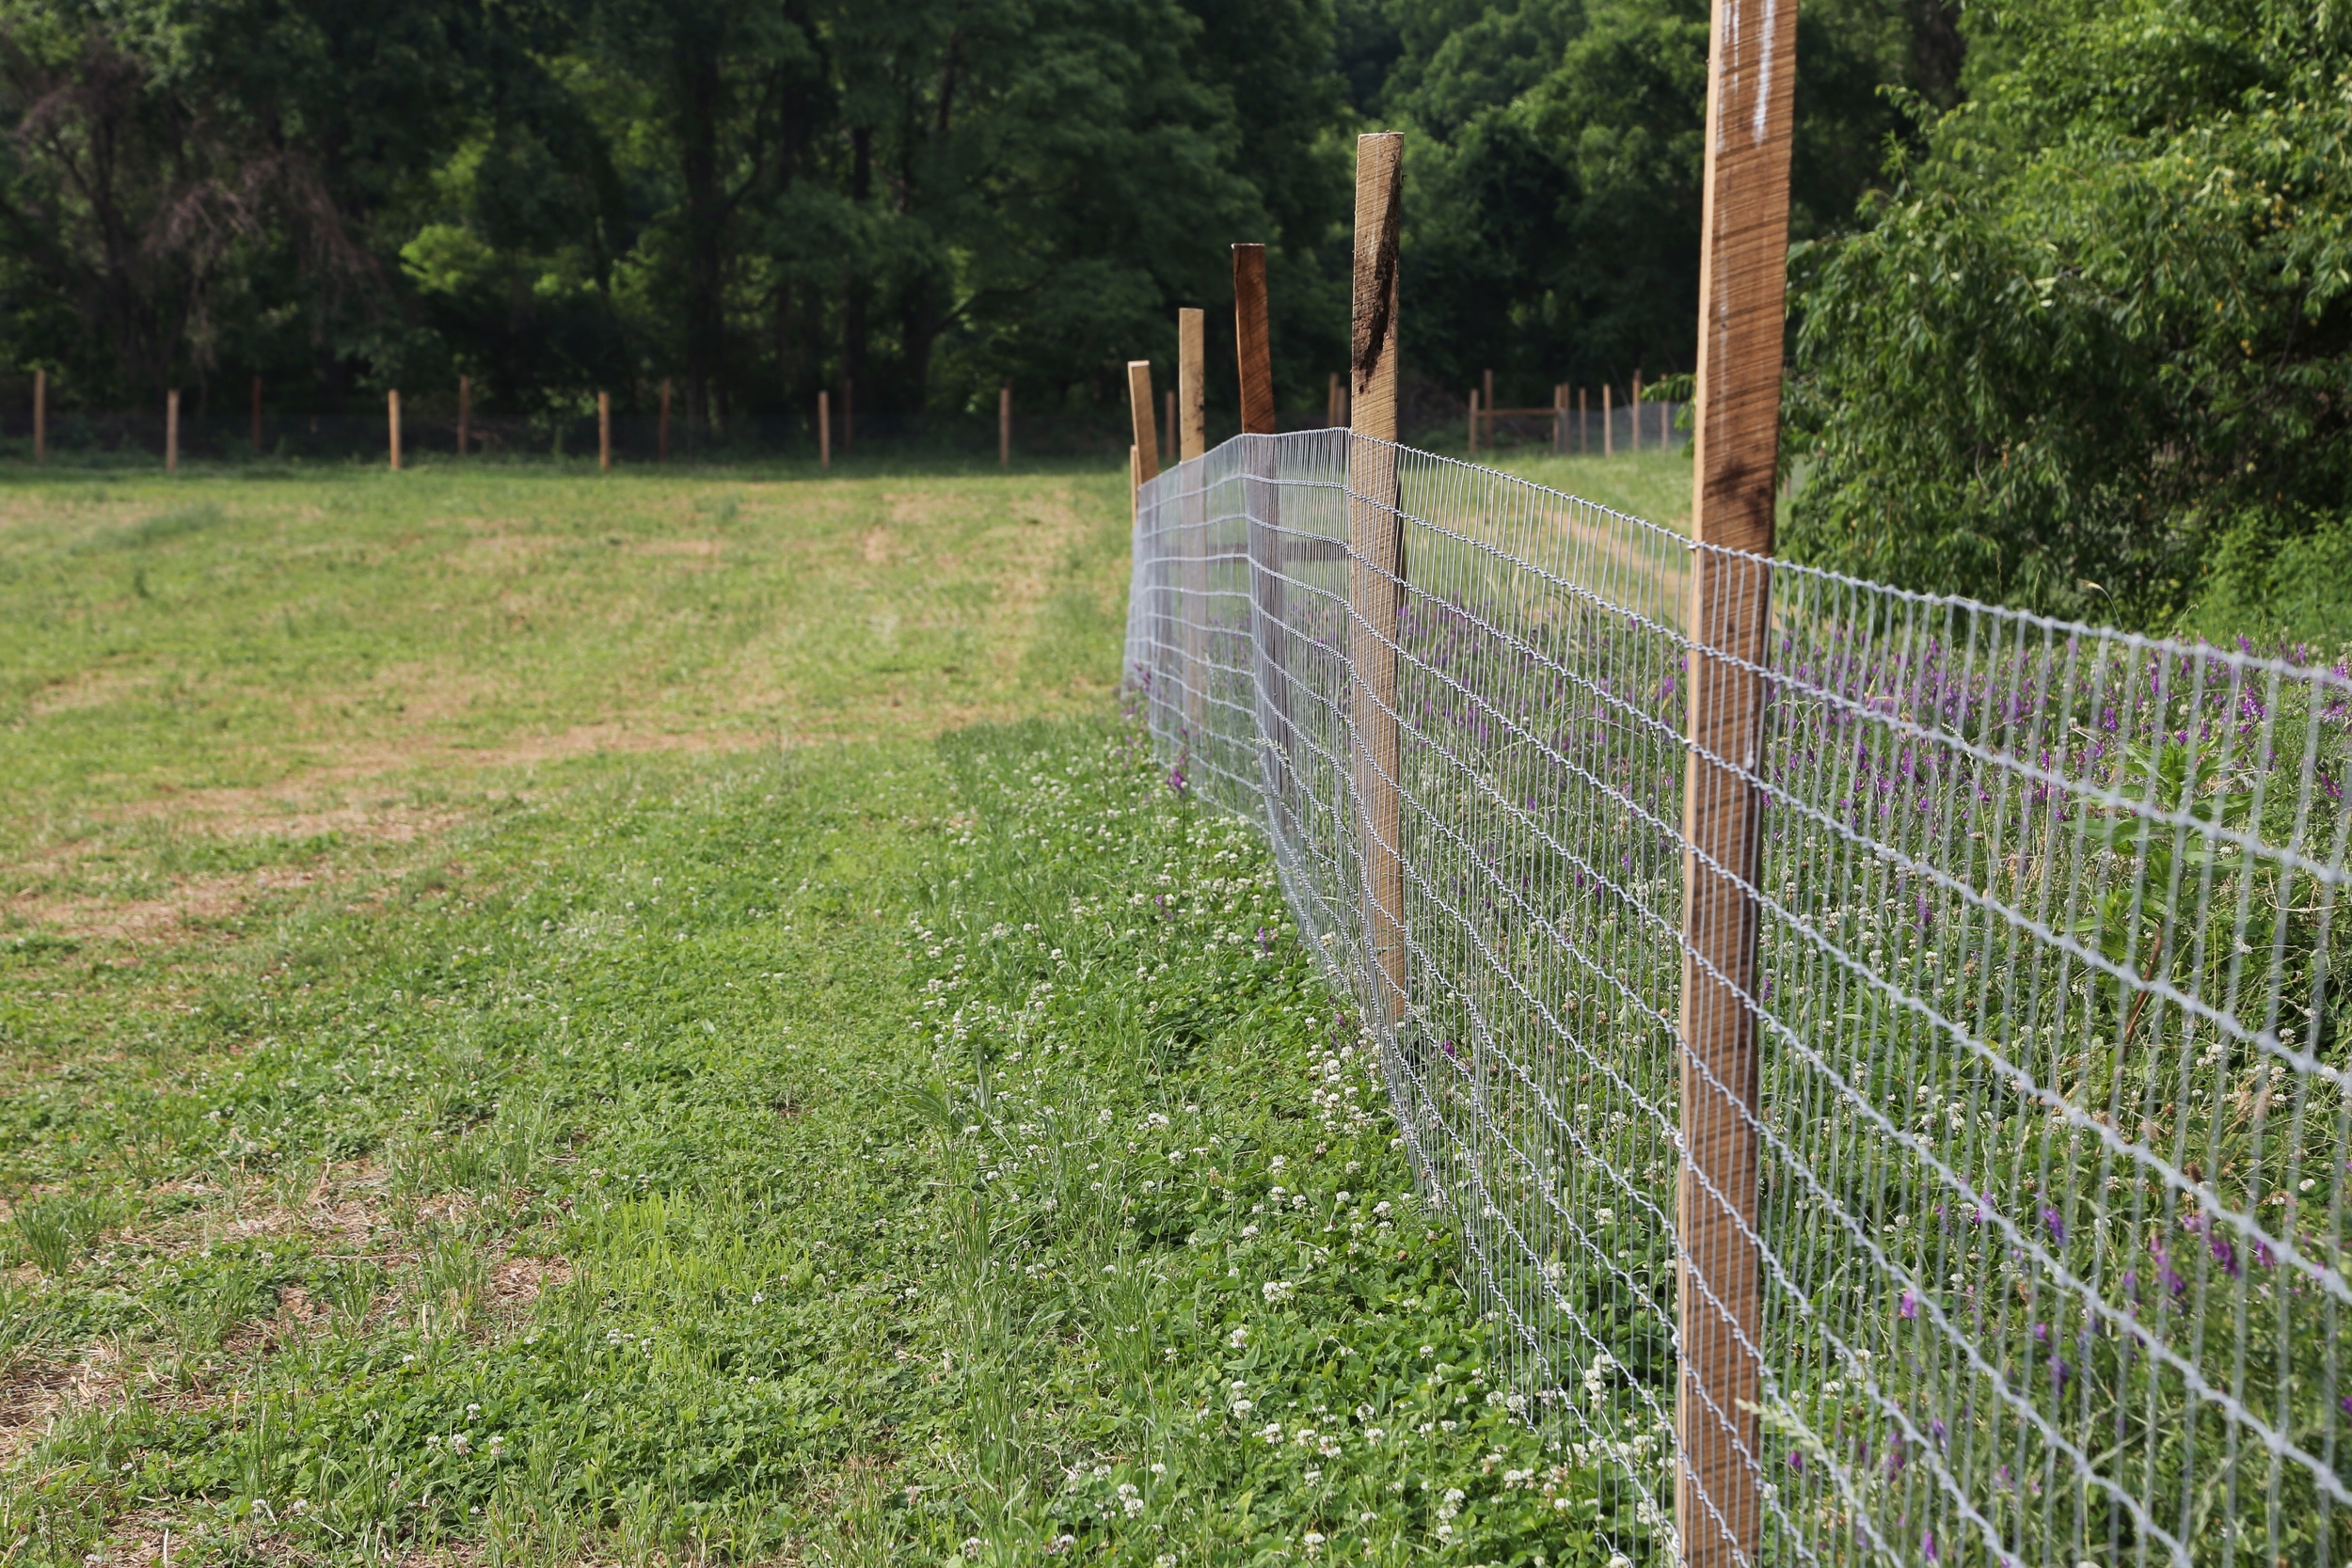 Looking down across a newly fenced area. Soon we'll let the goats loose here to clean it out.